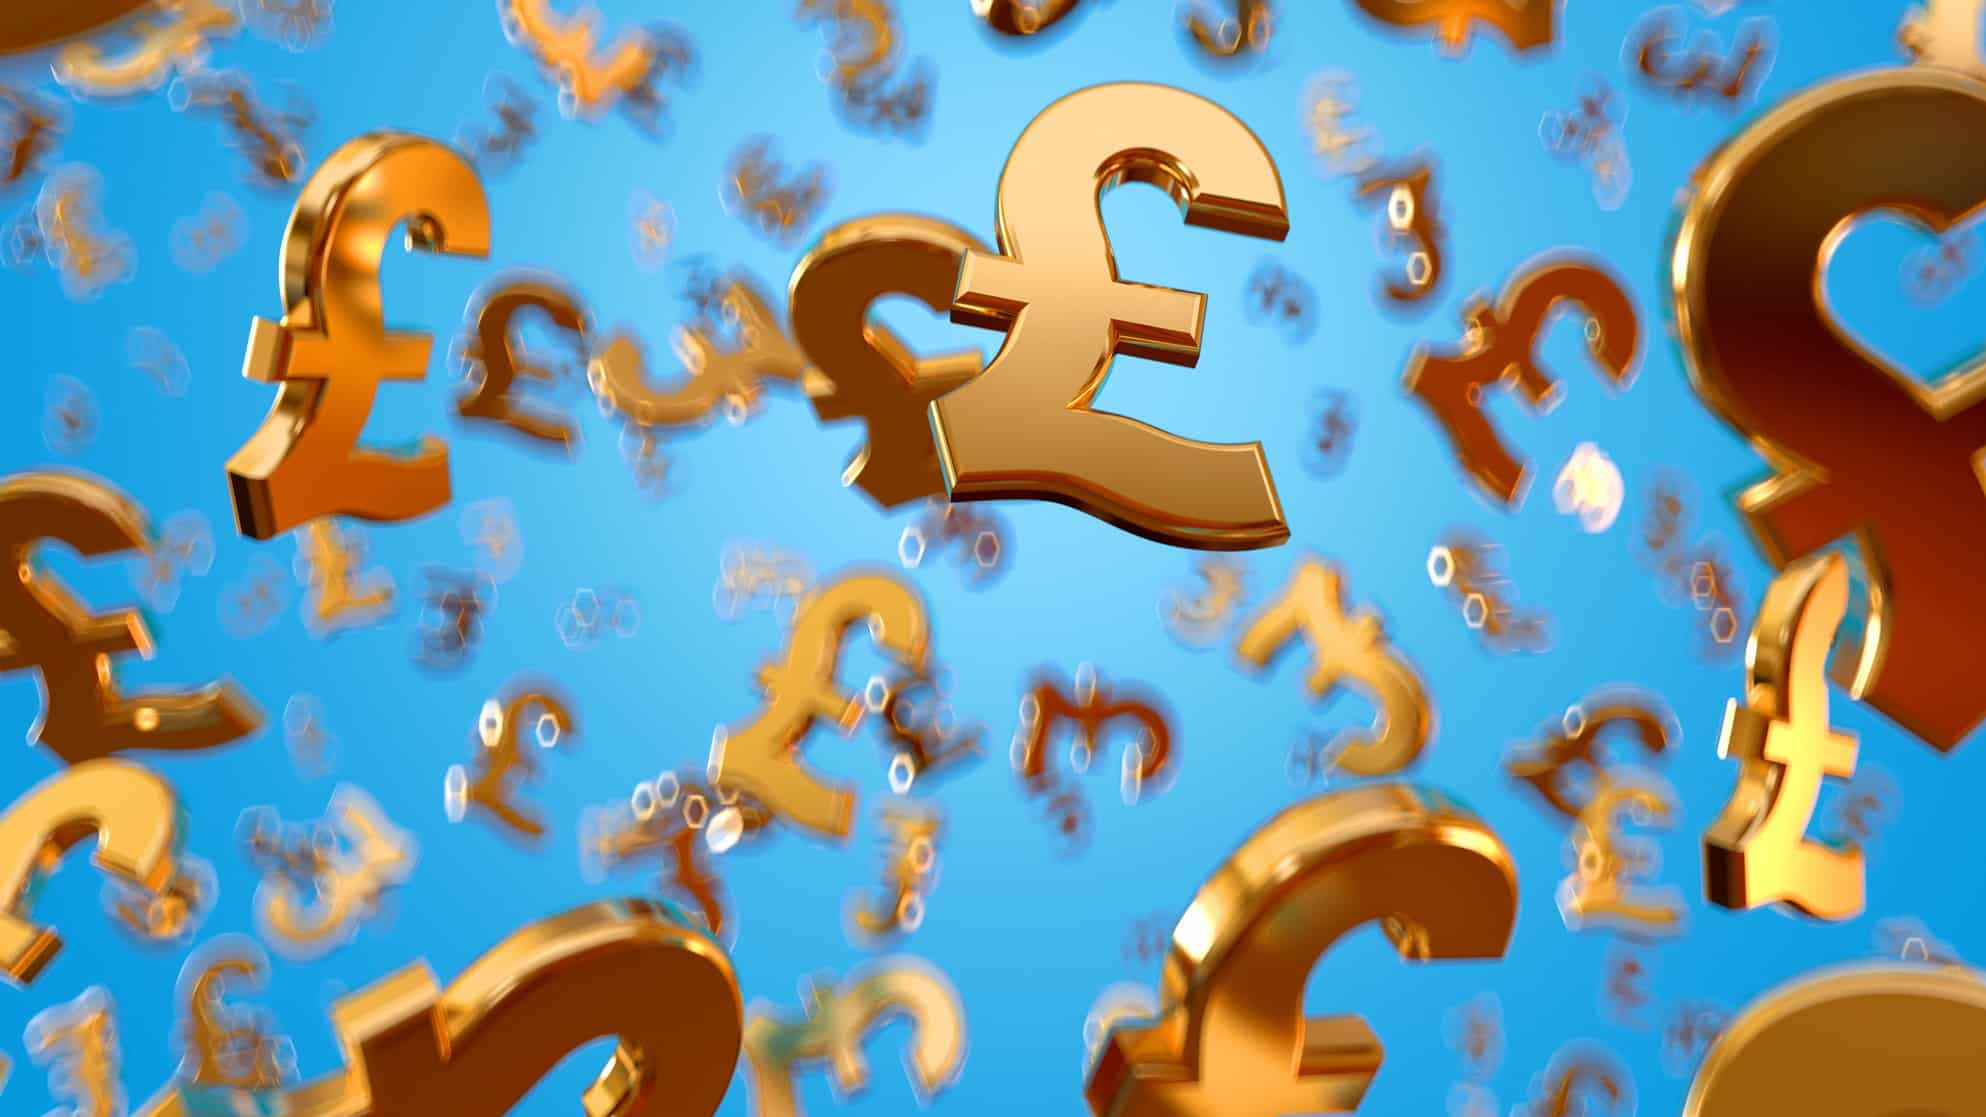 rising UK money represented by gold pounds sterling symbols floating high in the sky